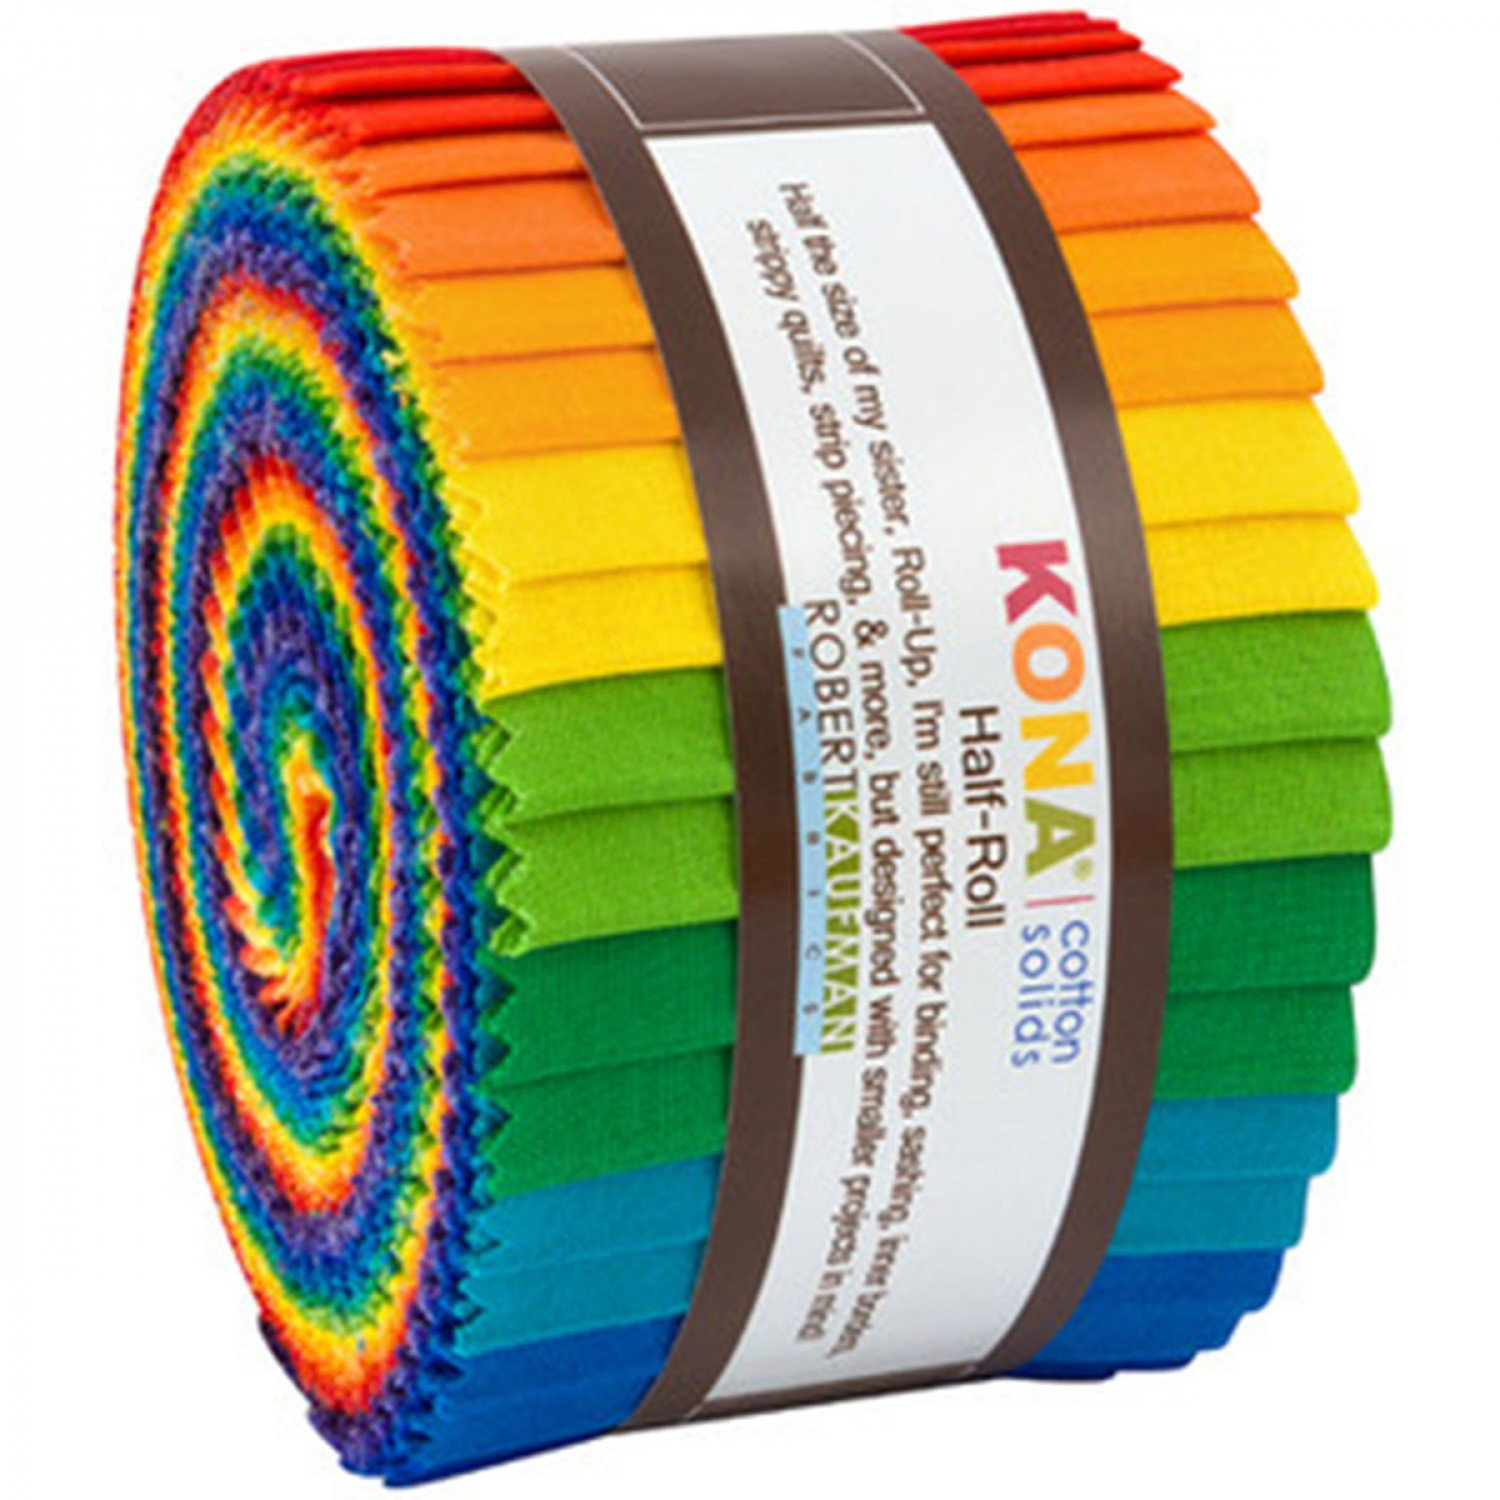 2-1/2in Strips Roll Up Kona BRIGHT RAINBOW PALETTE 24 PCS HR 156 24